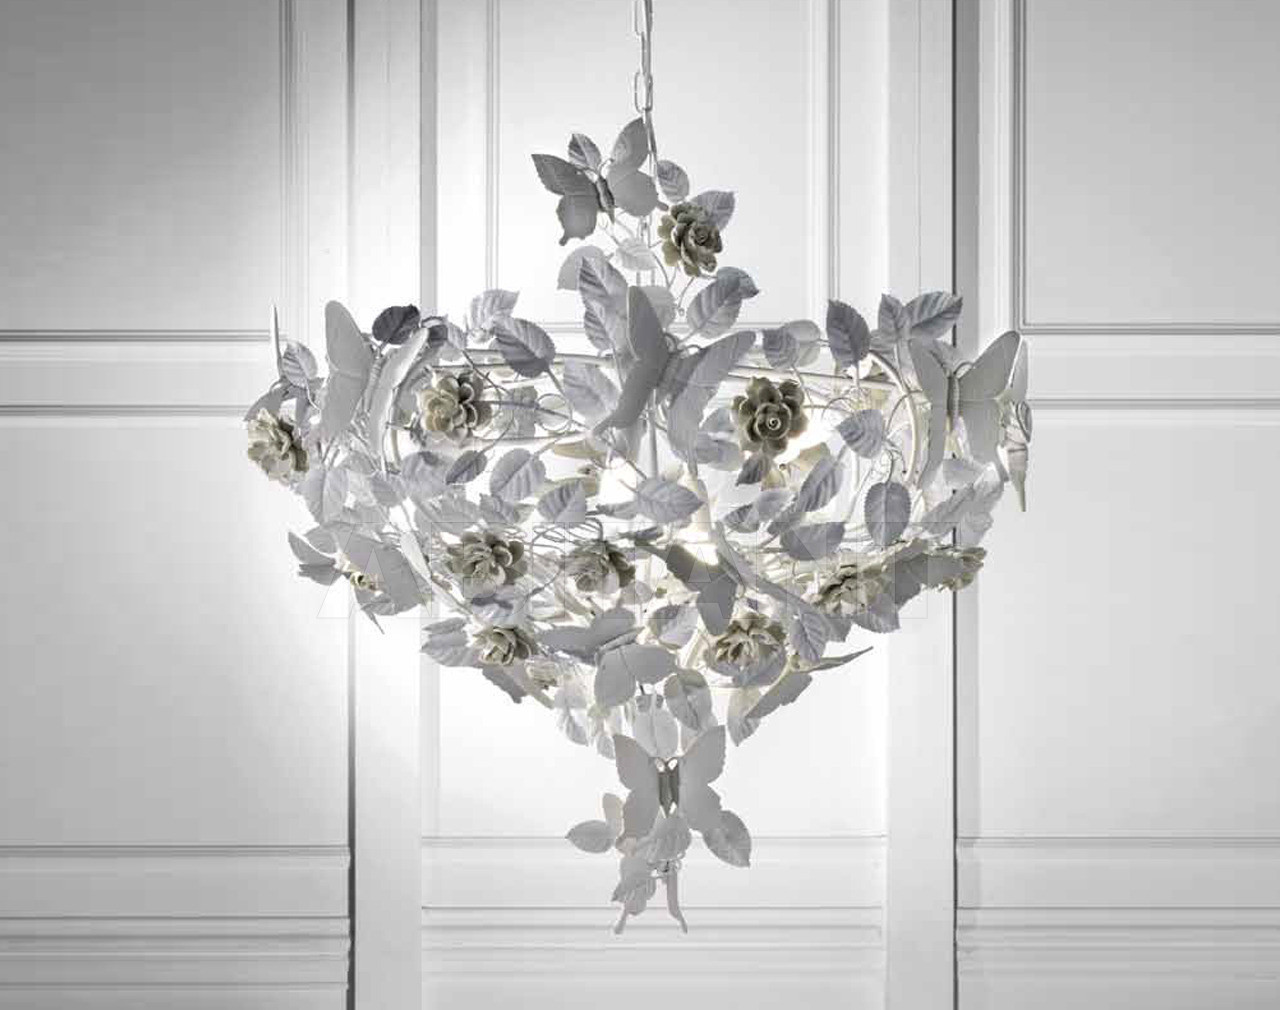 Купить Люстра BUTTERFLY CHANDELIER Villari Home And Lights 4202925-101